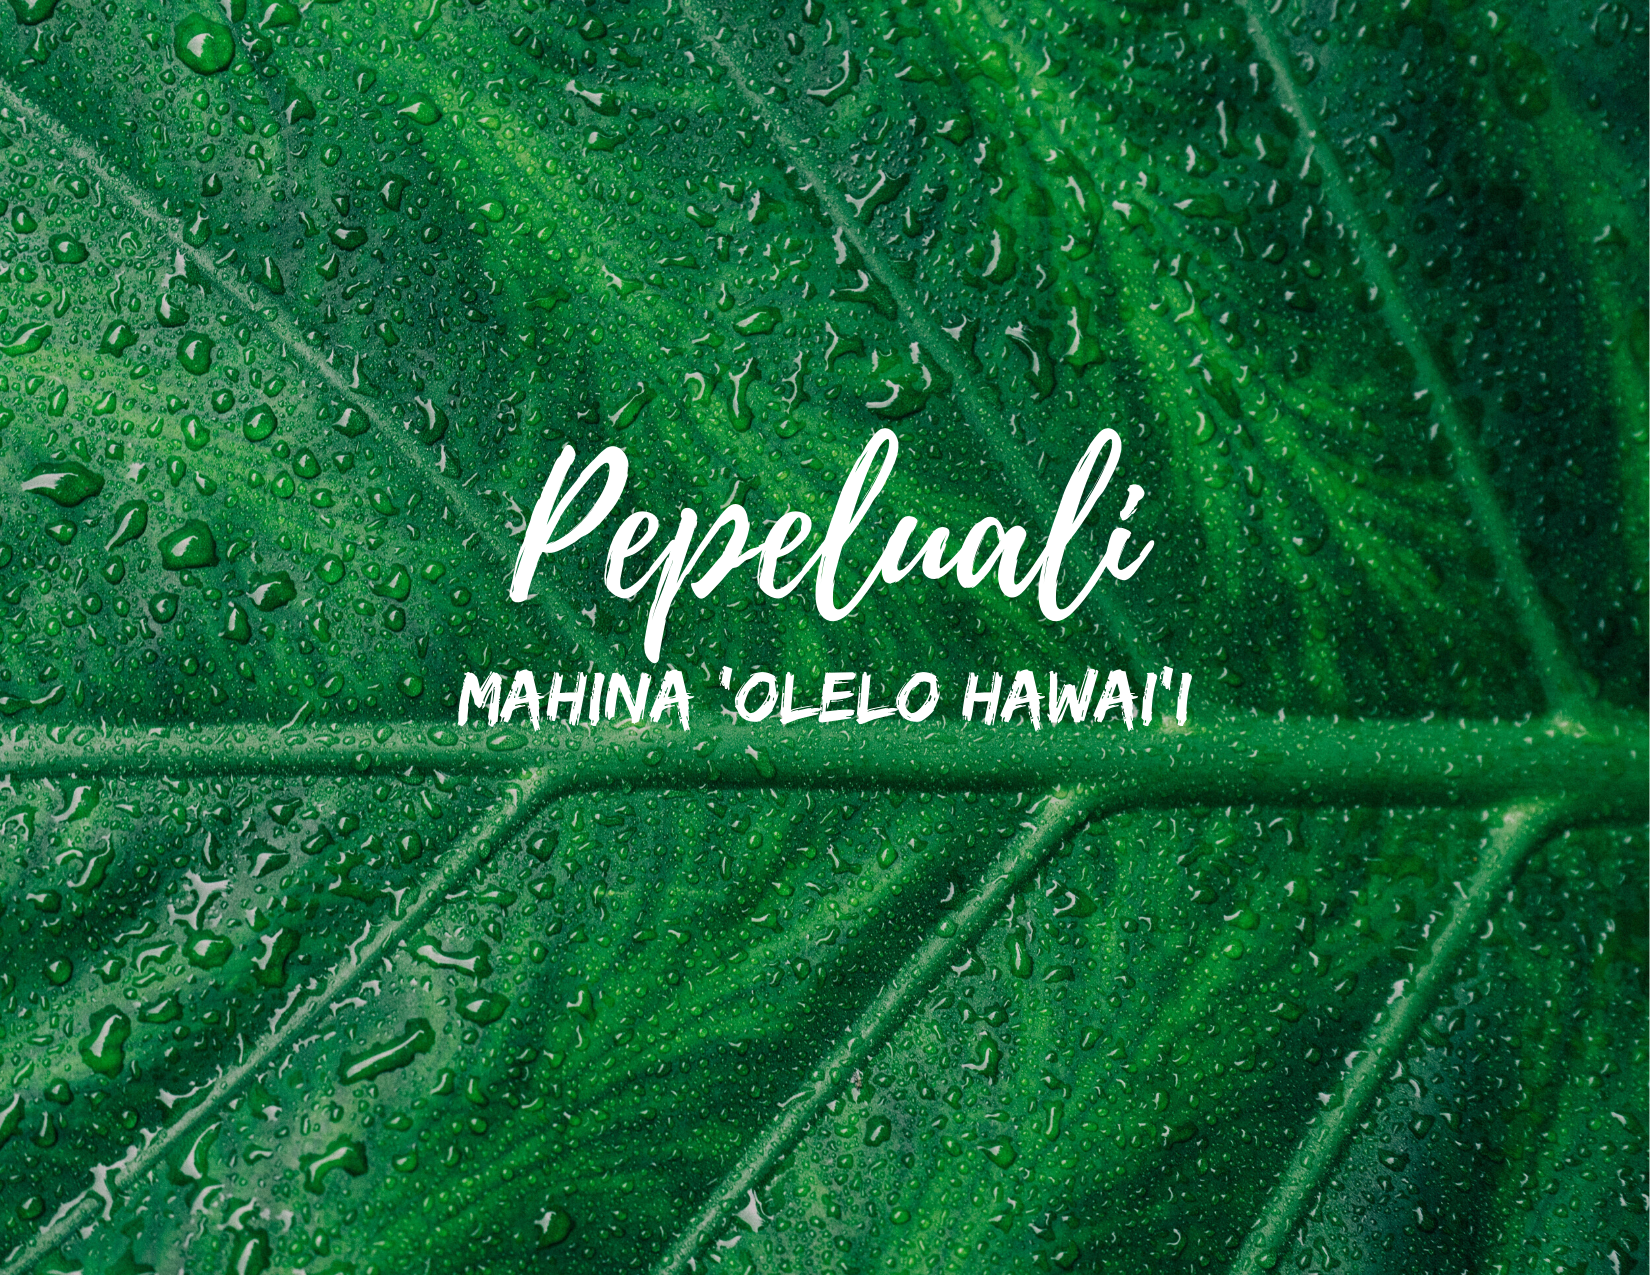 Image of a leaf with the words Pepeluali and Mahina Olelo Hawaii - February (Hawaiian Language Month)